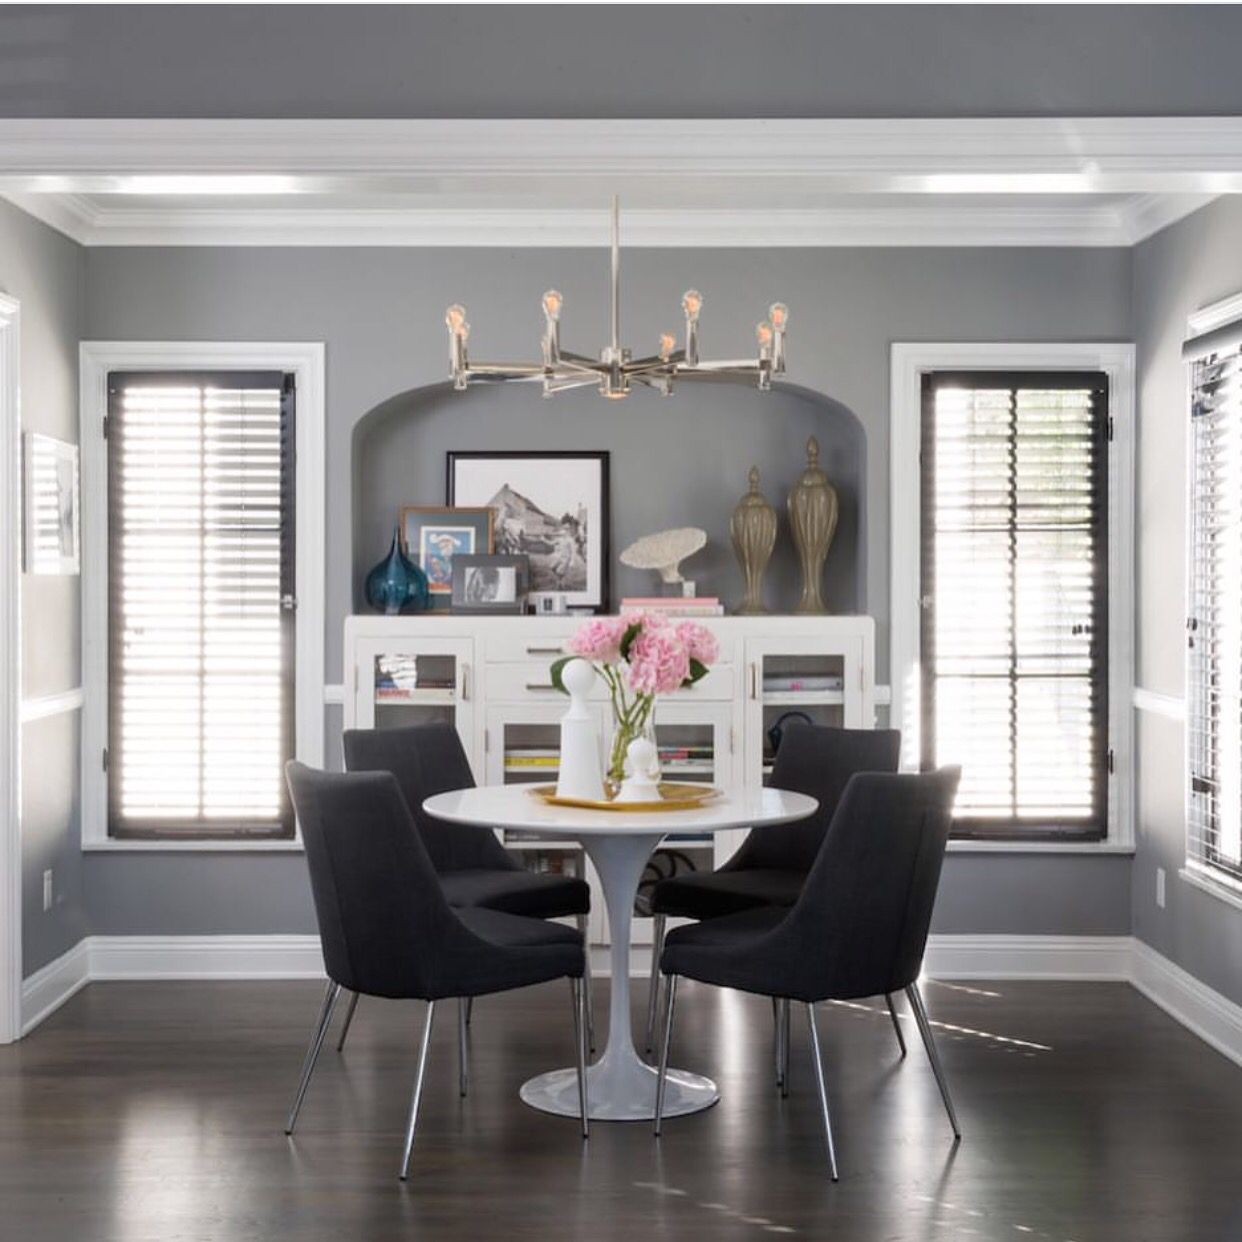 Gray Geese Jeff Lewis Paint Jeff Lewis Living Room Round Dining Room Dining Room Small